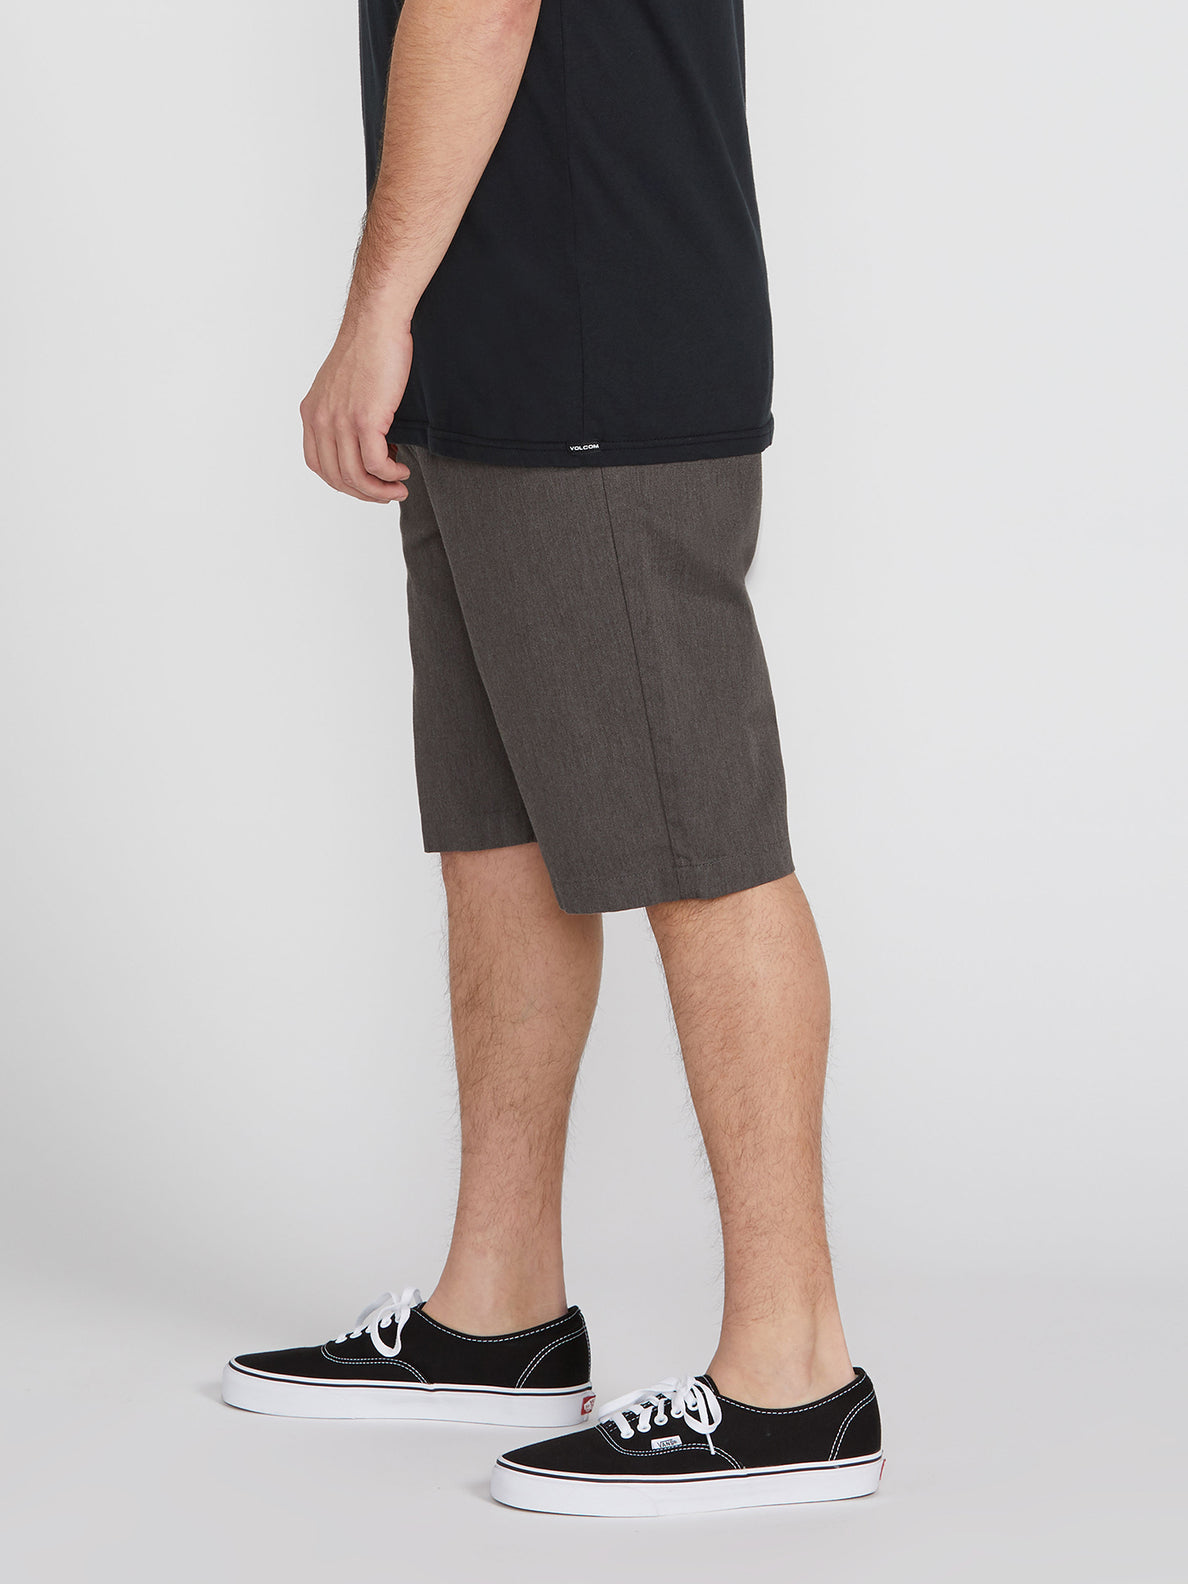 V Monty Short - Charcoal Heather